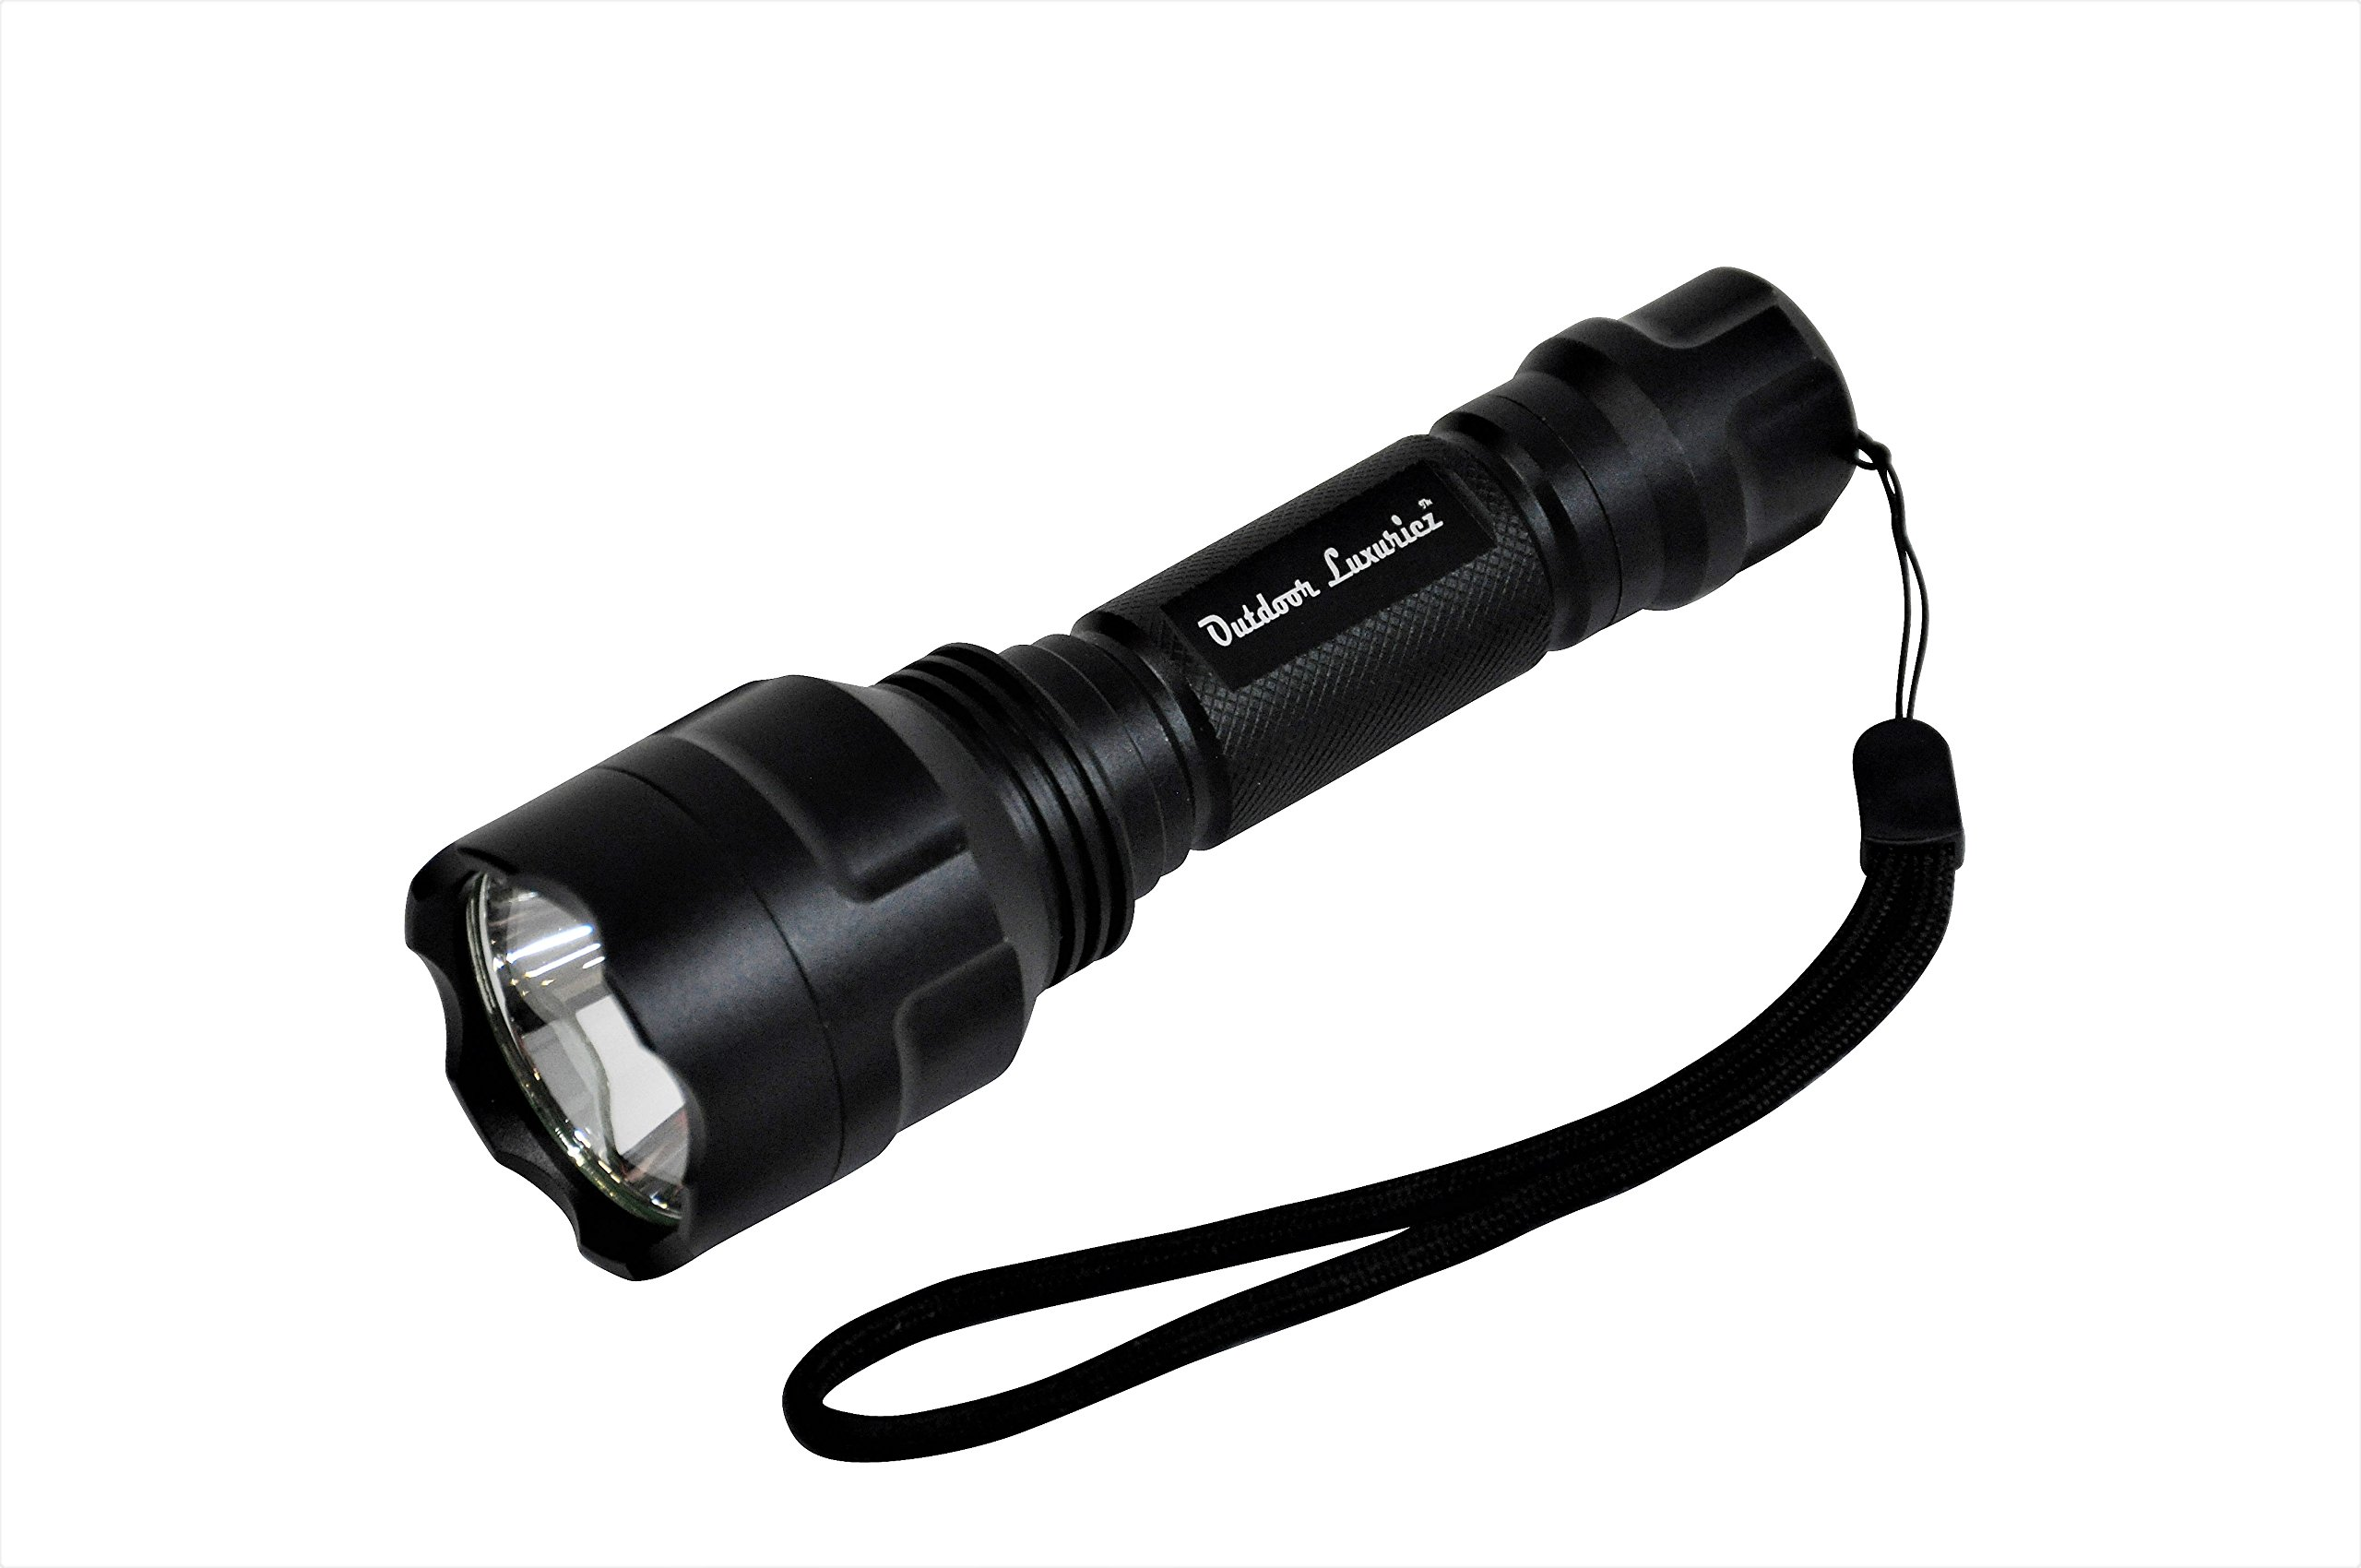 Military Grade Tactical Defense Camping Emergency - Compact IP68 Waterproof High Lumen Rechargeable Handheld LED Flashlight - Outdoor Luxuriez